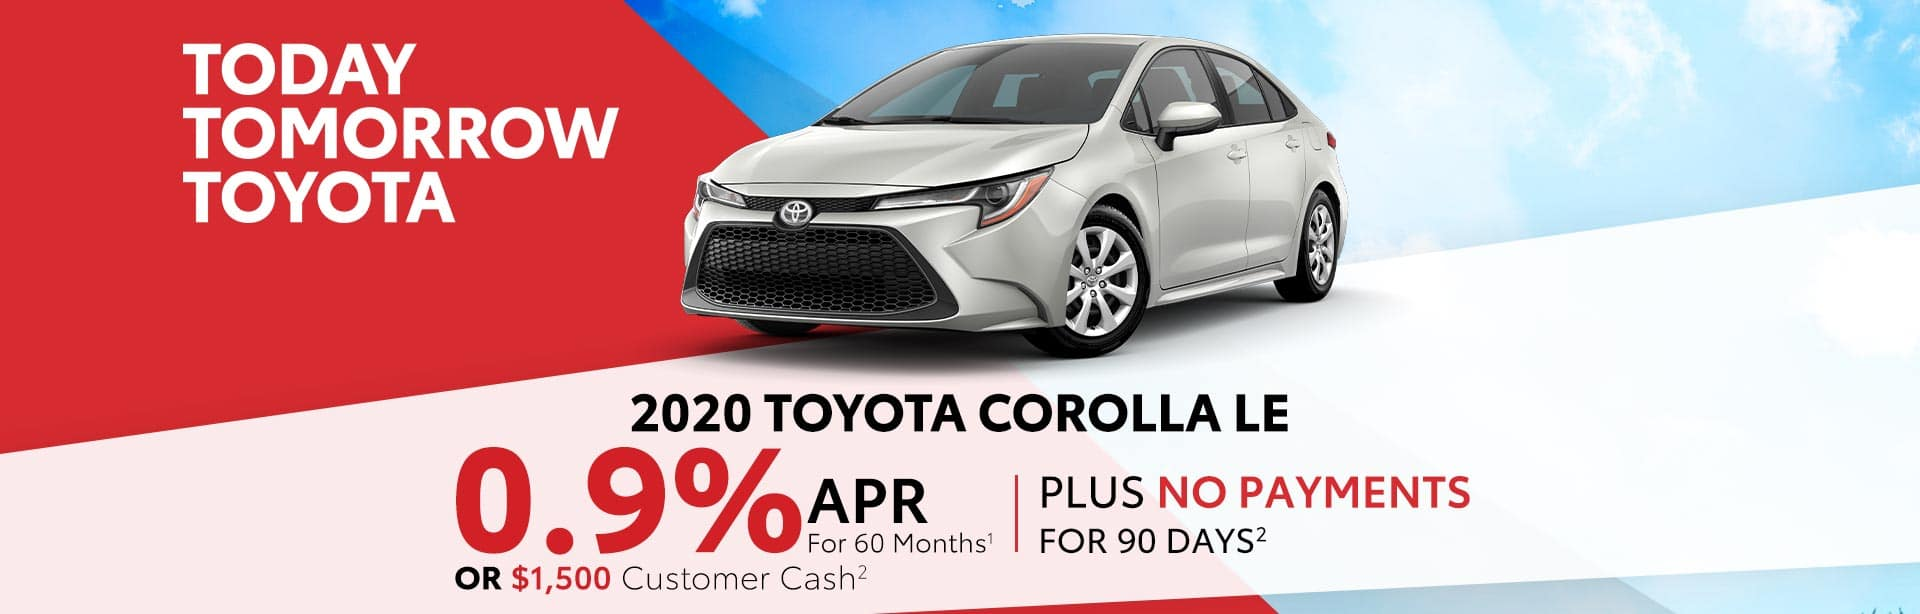 Finance a 2020 Corolla for 0.9% near Indianapolis, Indiana